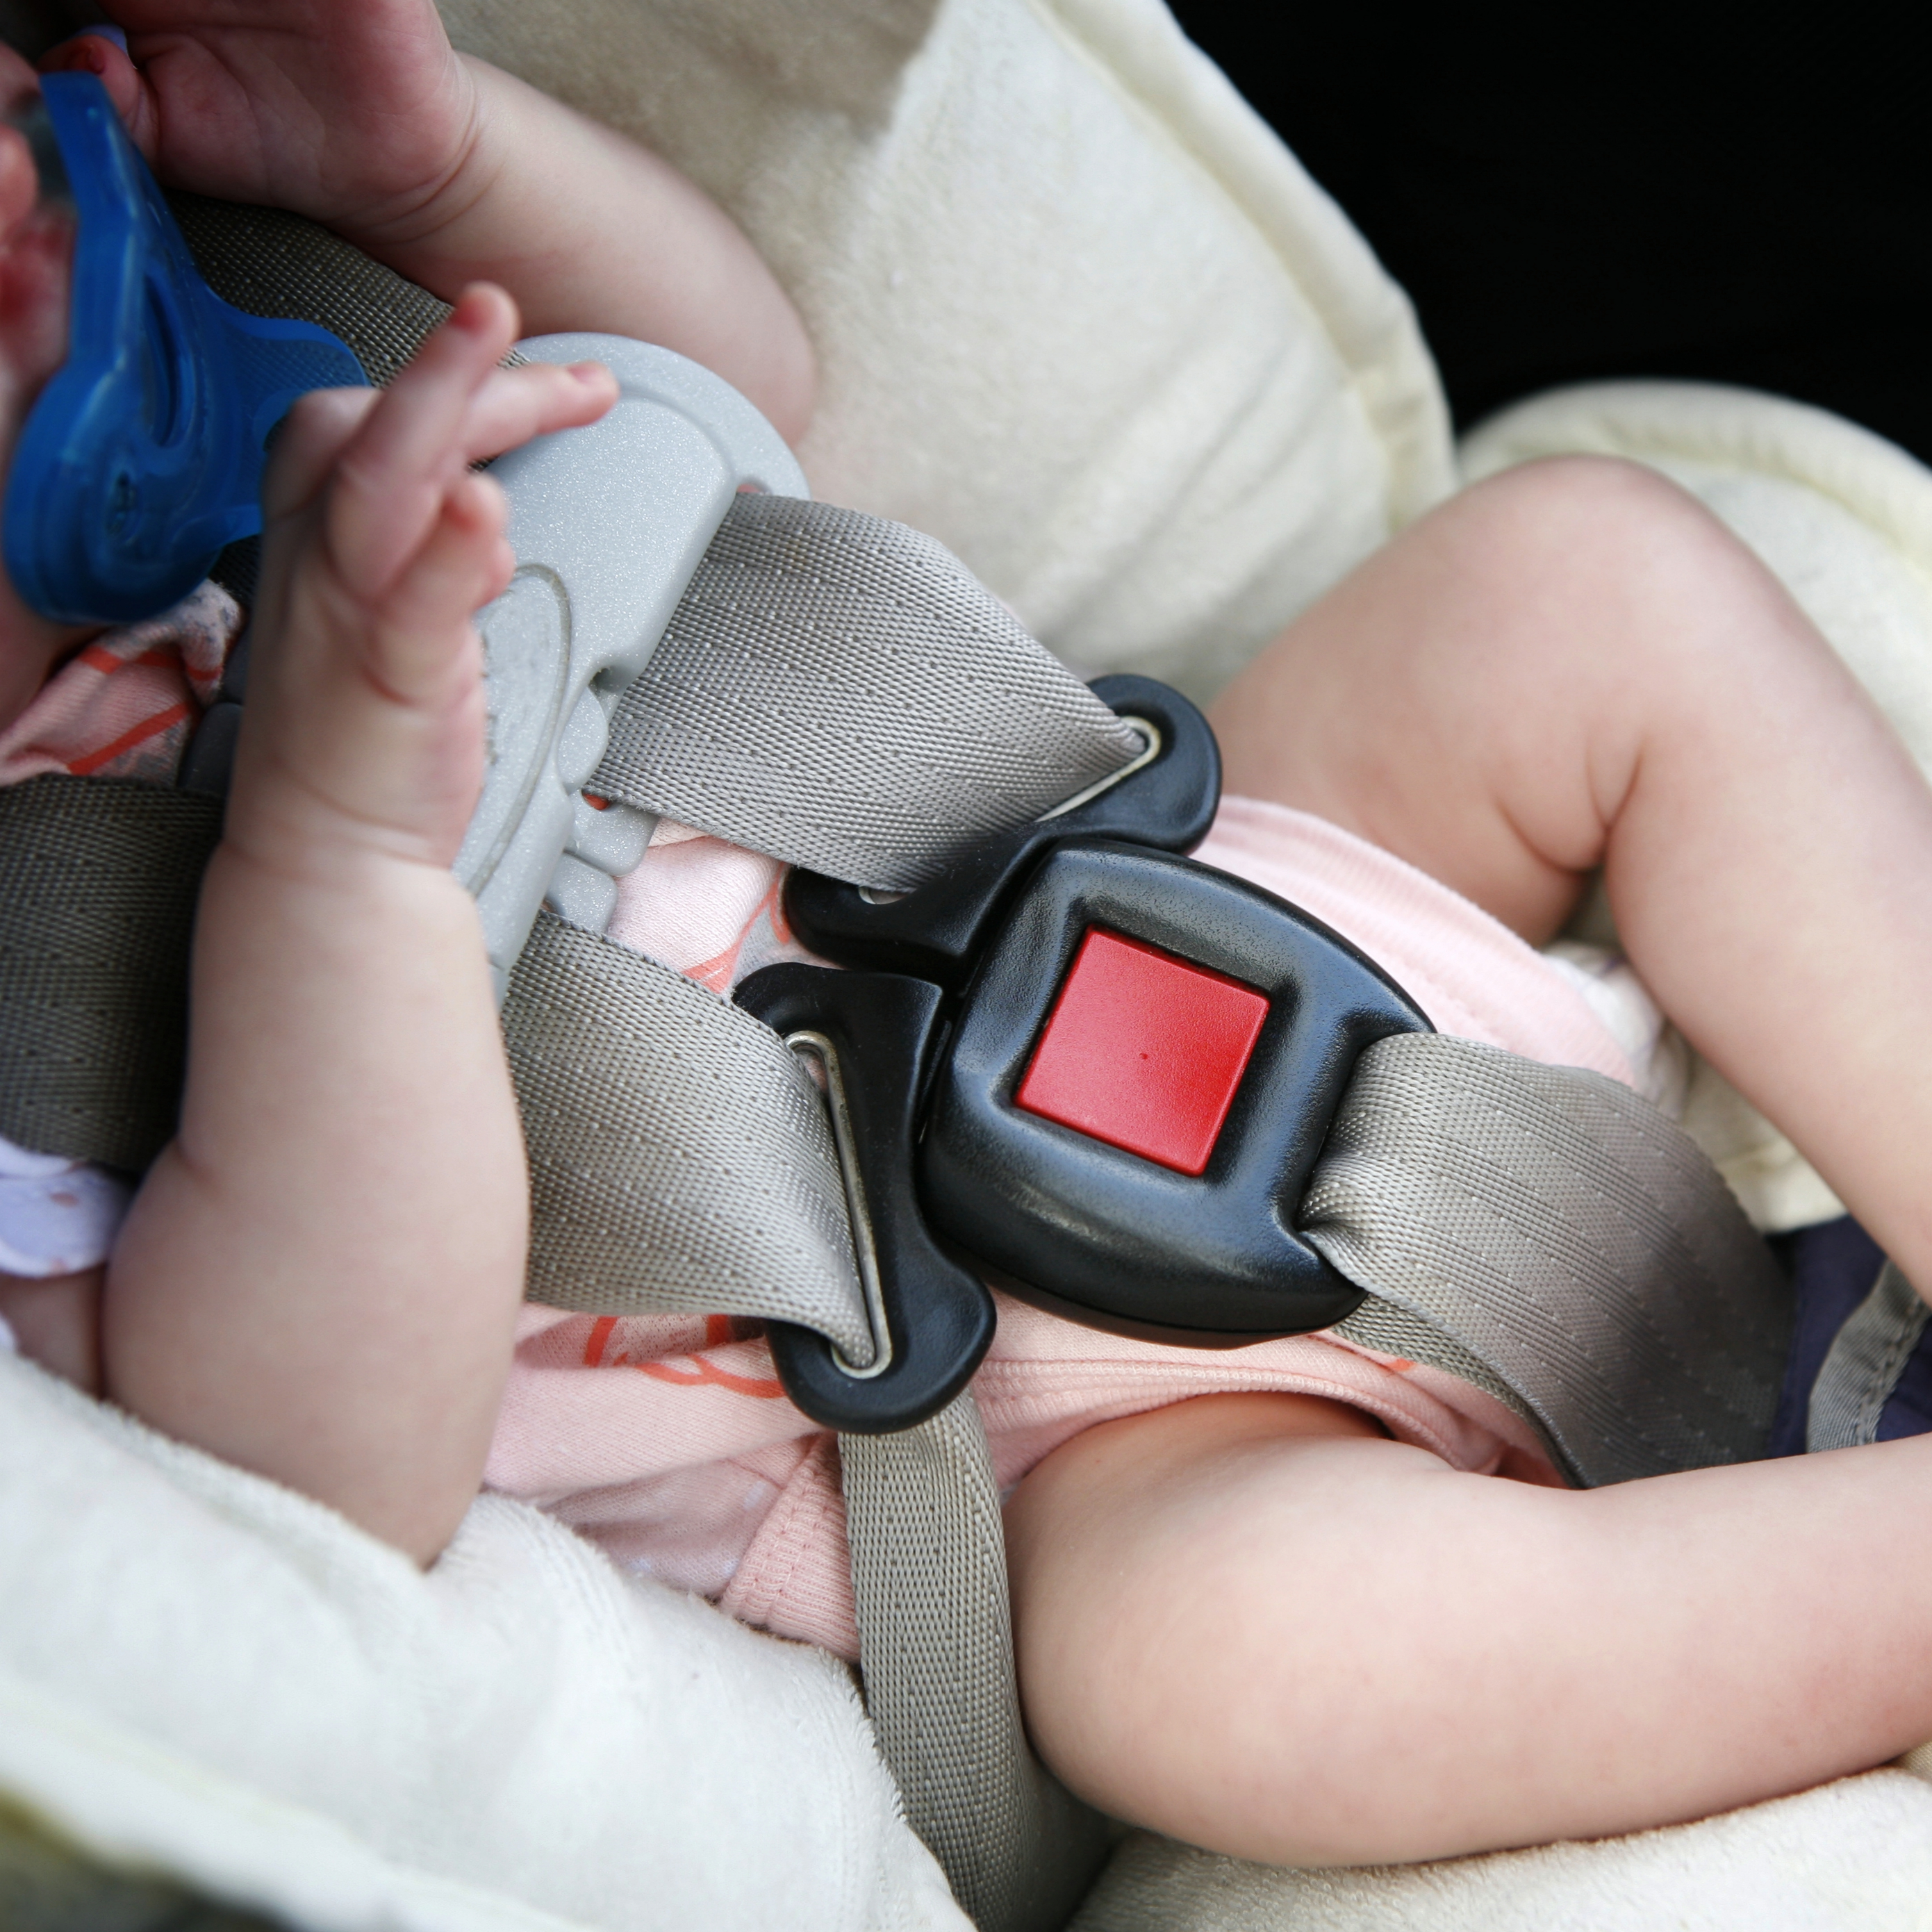 a baby buckled in a car seat for safety